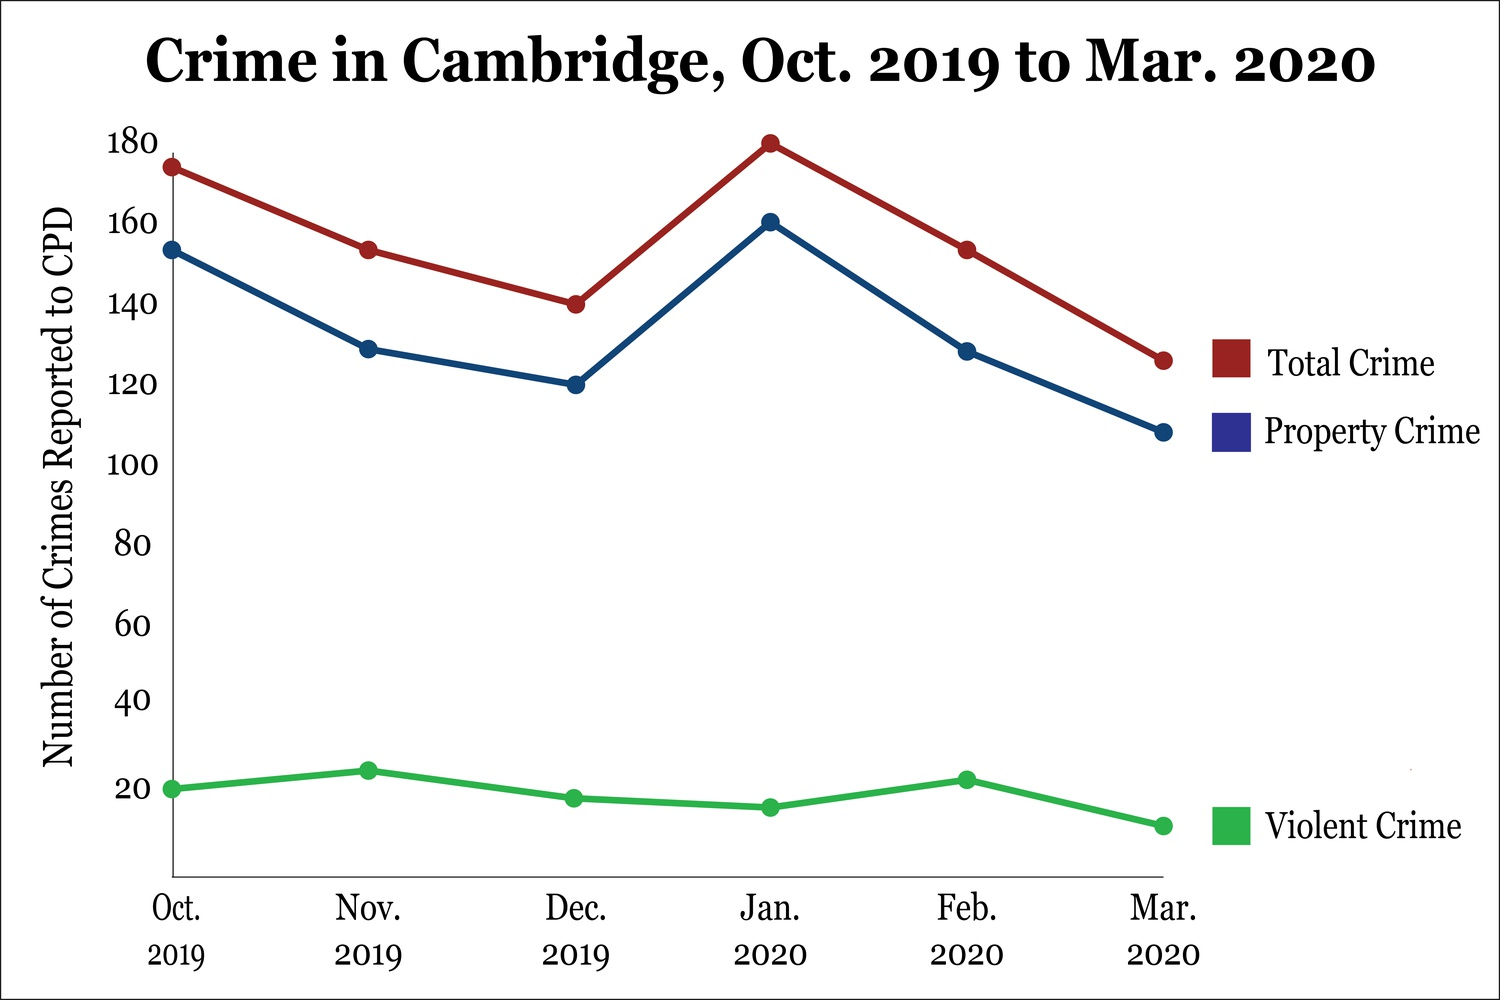 Cambridge saw a decrease in reported crimes, both from February and from March 2019.